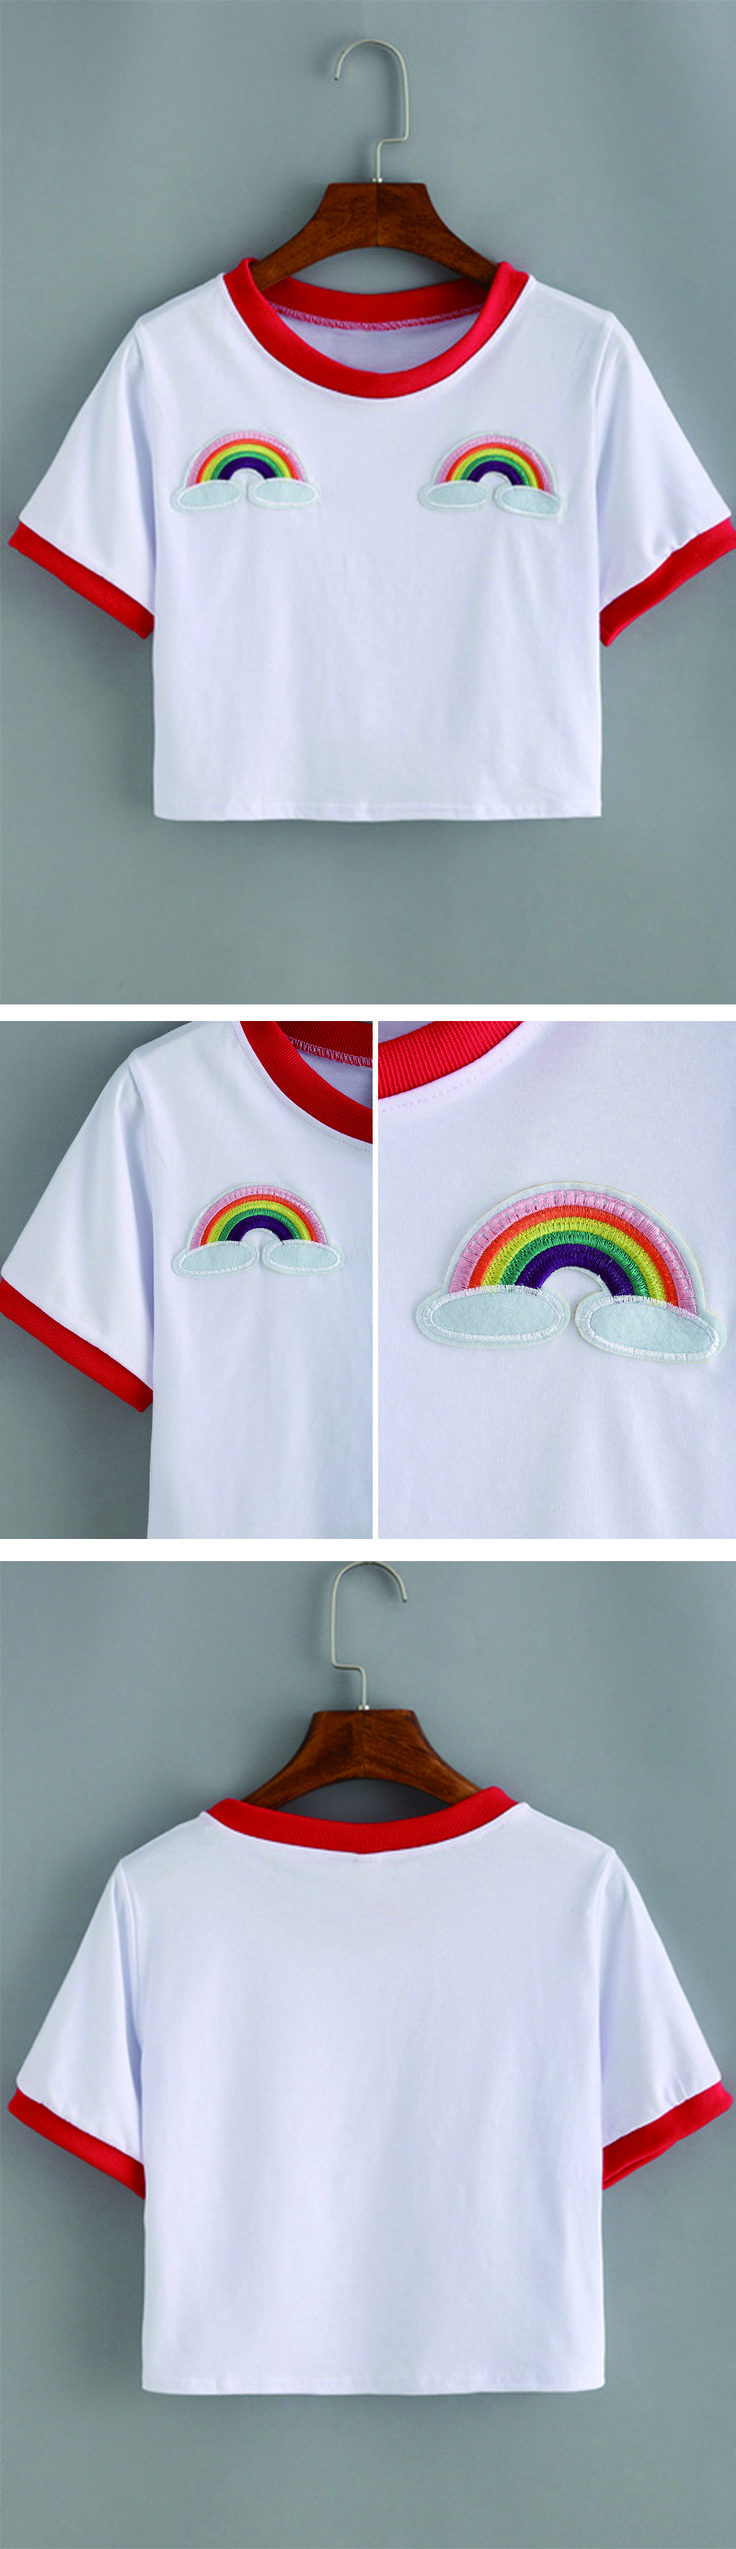 best 25 pride outfit ideas on pinterest  pride shirts